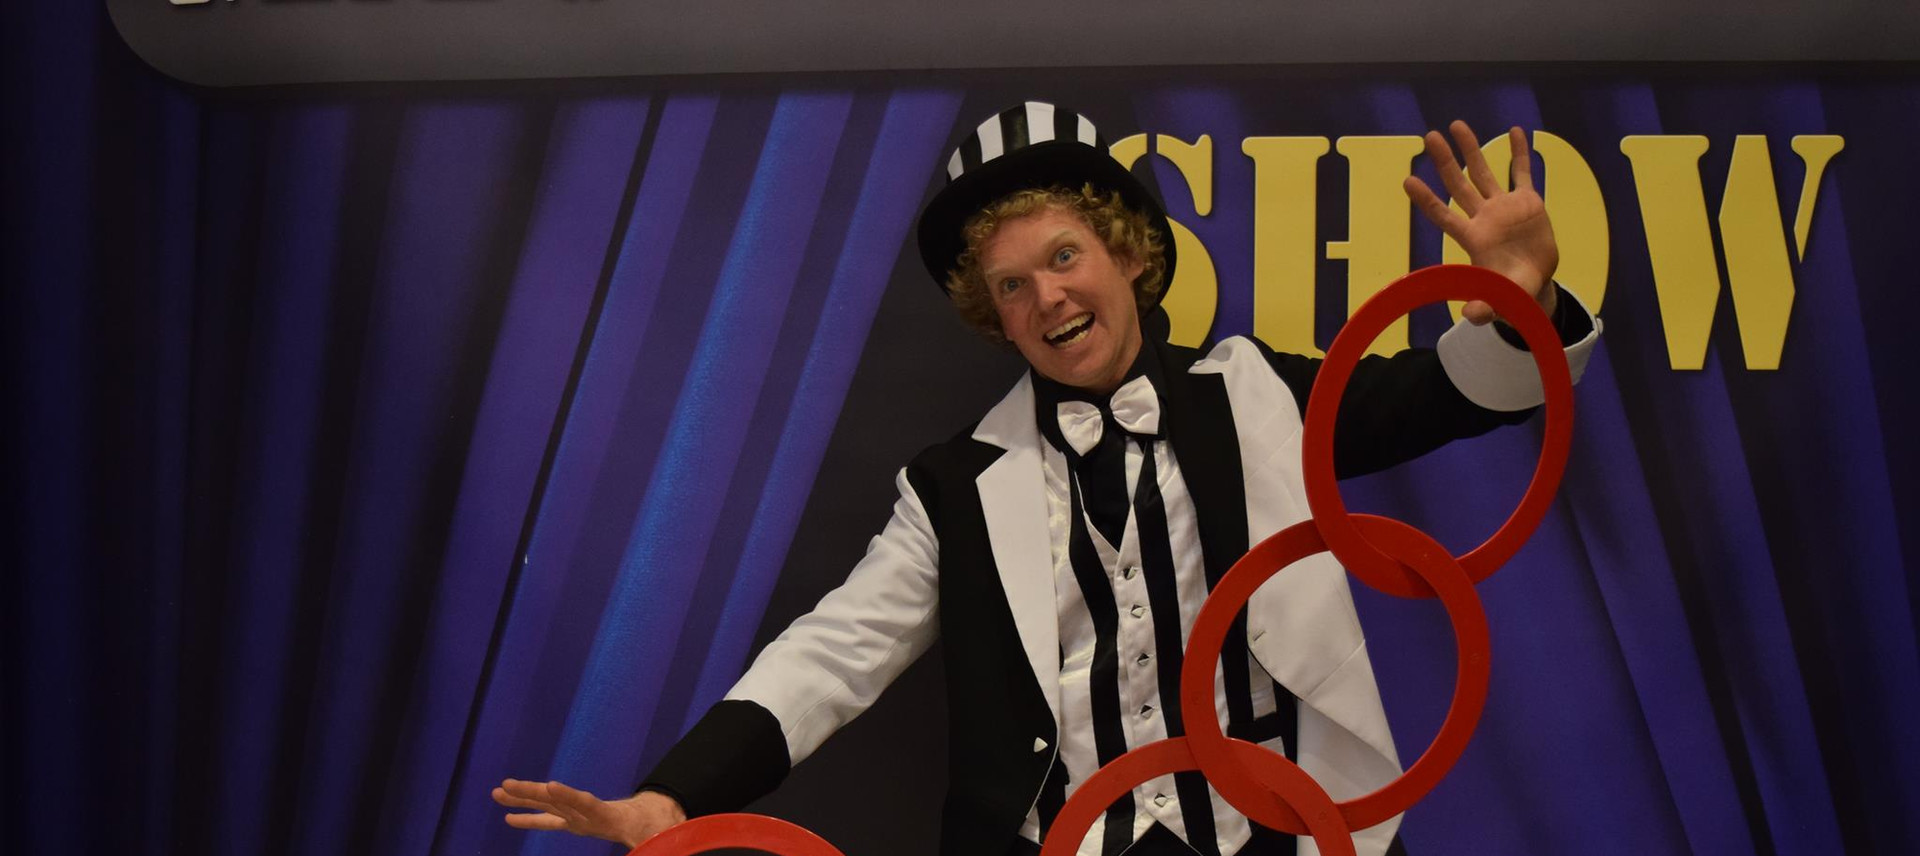 Magic Traffic Show Voorstelling Verkeer.